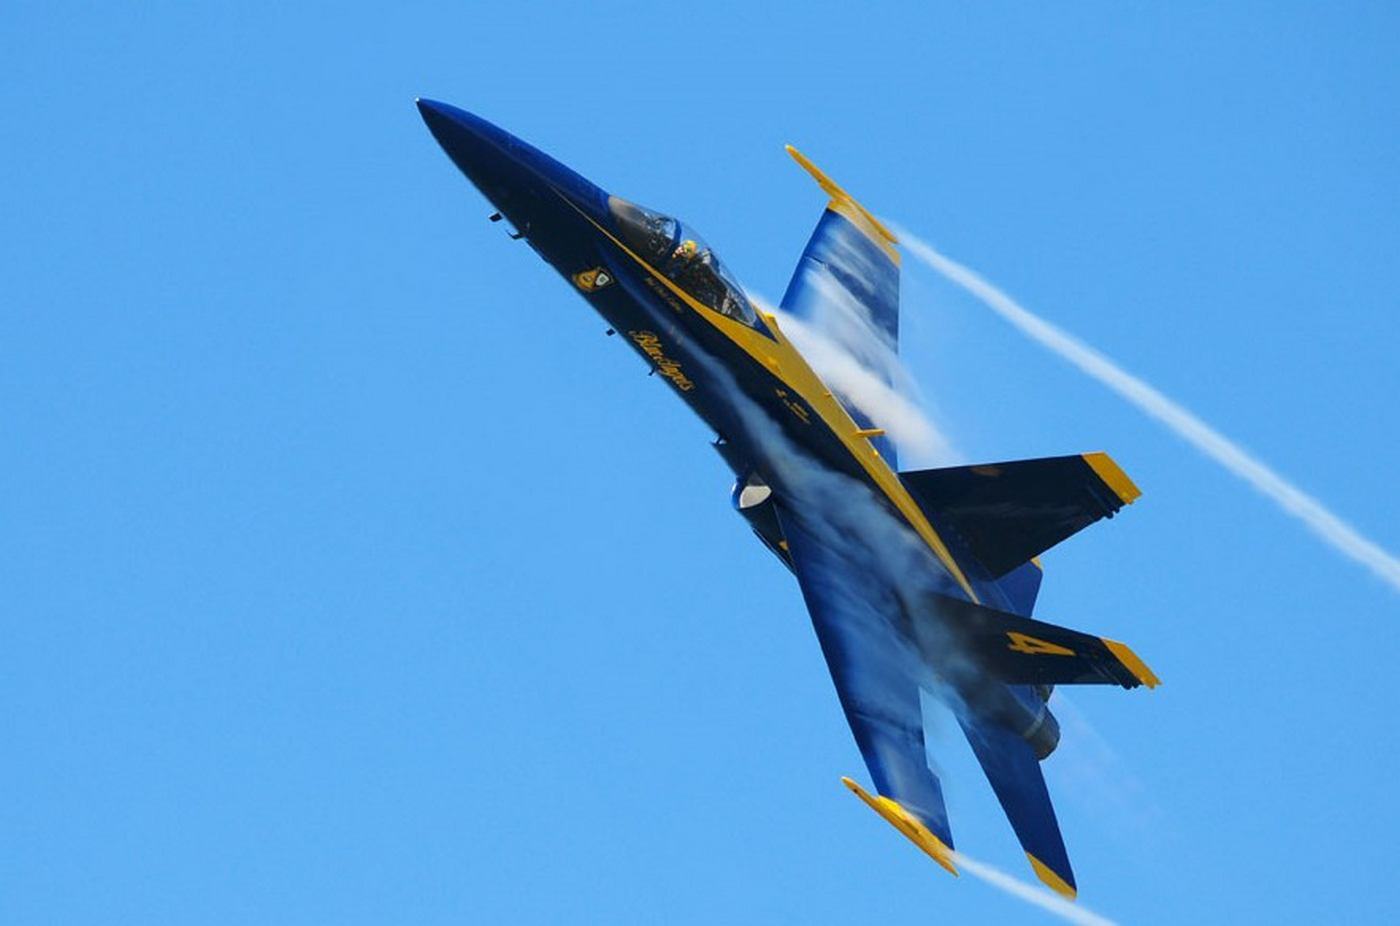 blue angel close to water's surface at 500mph | wordlesstech